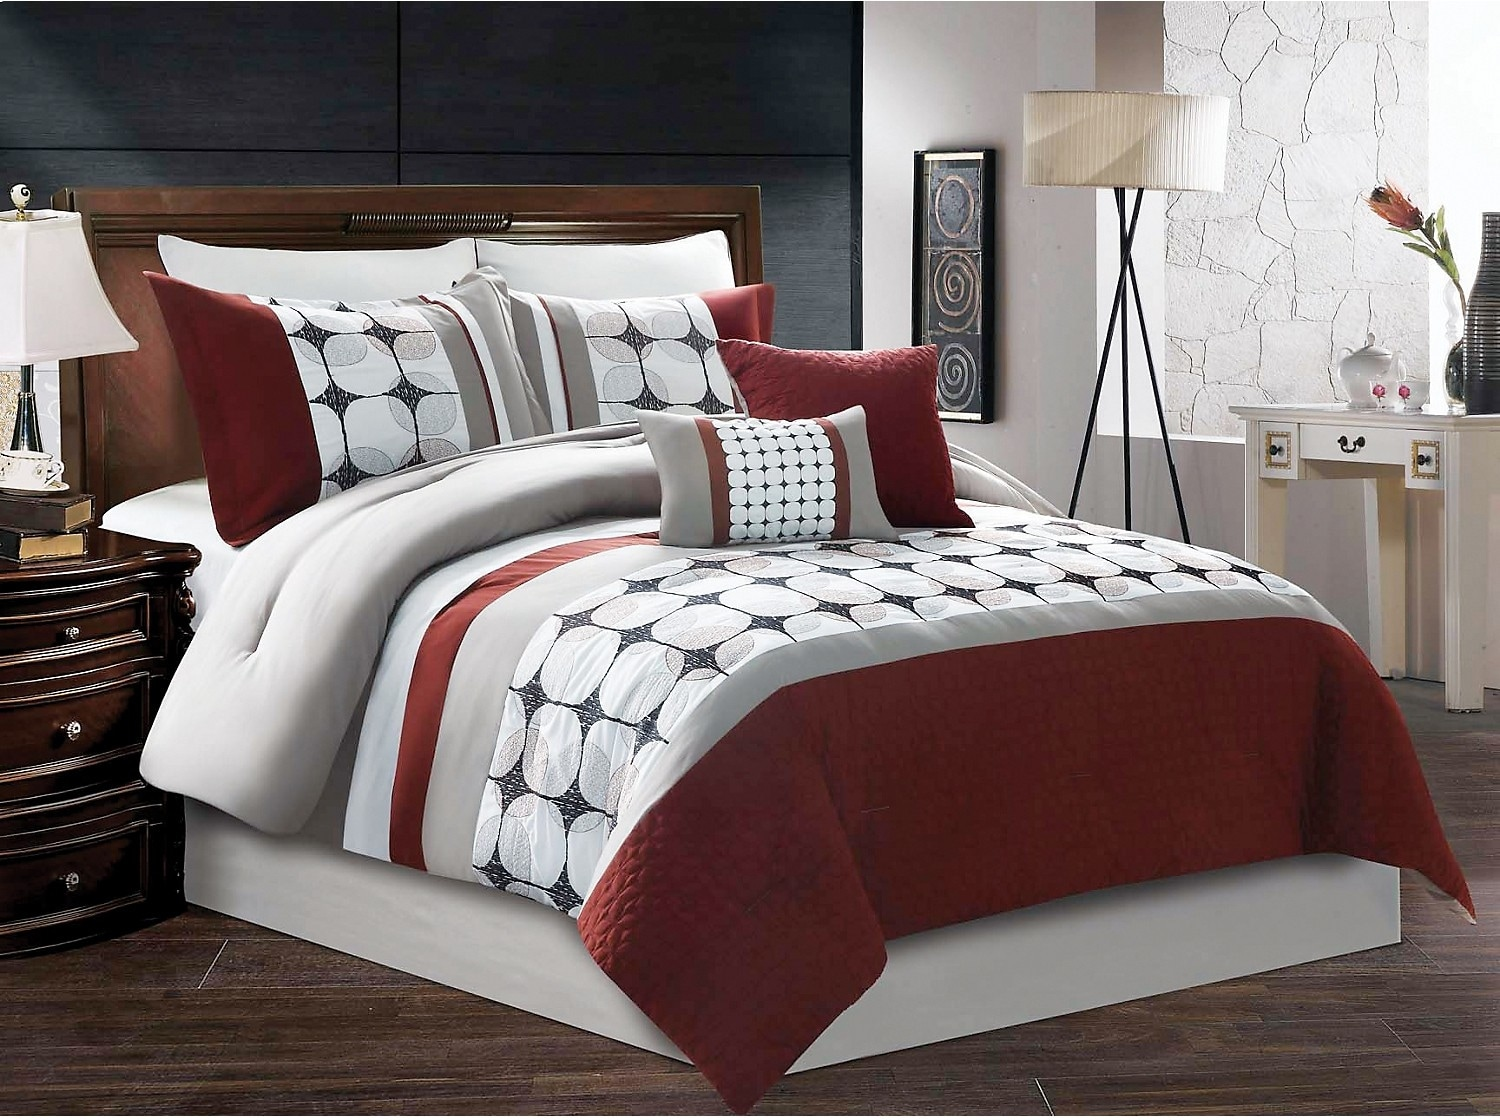 Dayton 8-Piece King Comforter Set